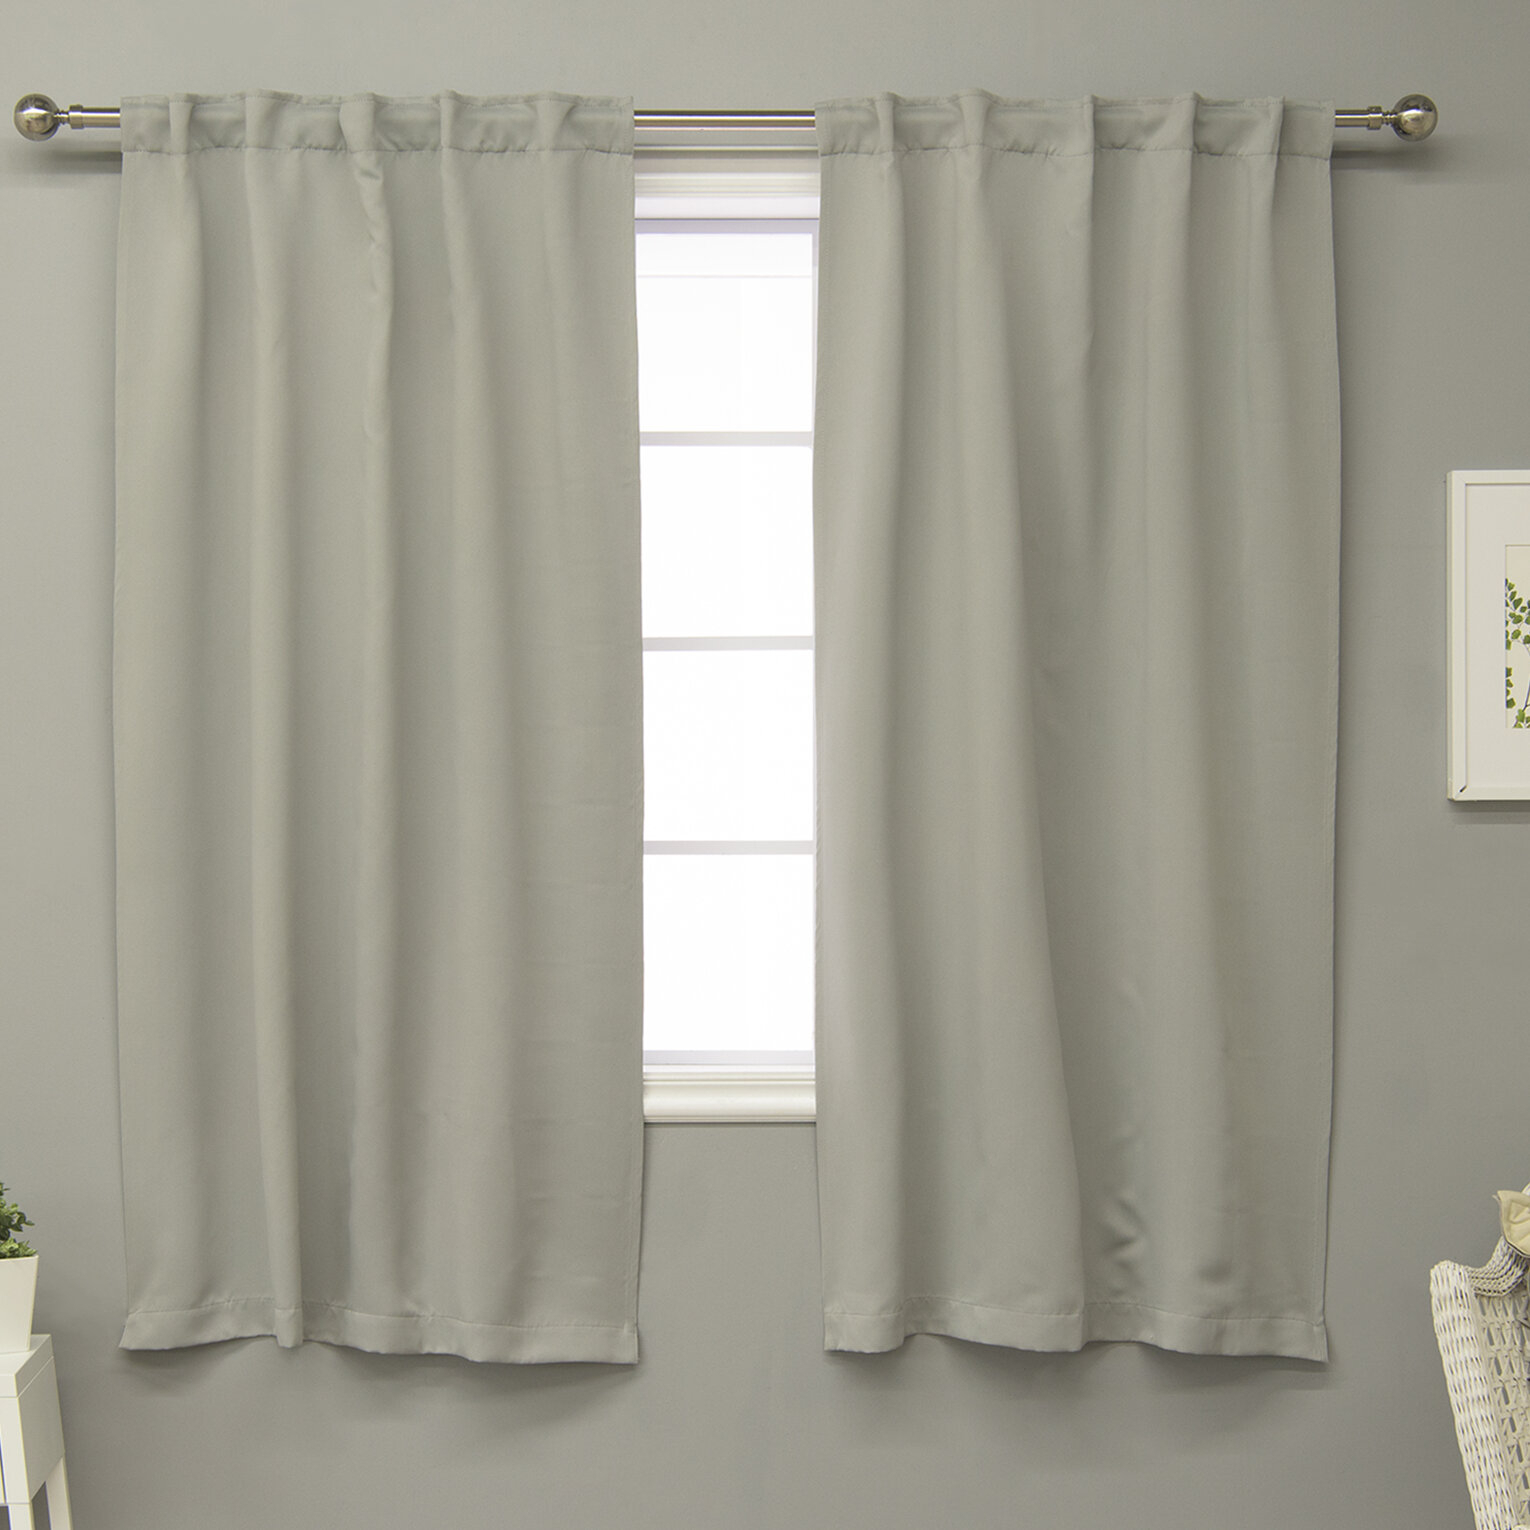 Rebeca Solid Blackout Thermal Rod Pocket Curtain Panels With Regard To Marine Life Motif Knitted Lace Window Curtain Pieces (View 15 of 20)